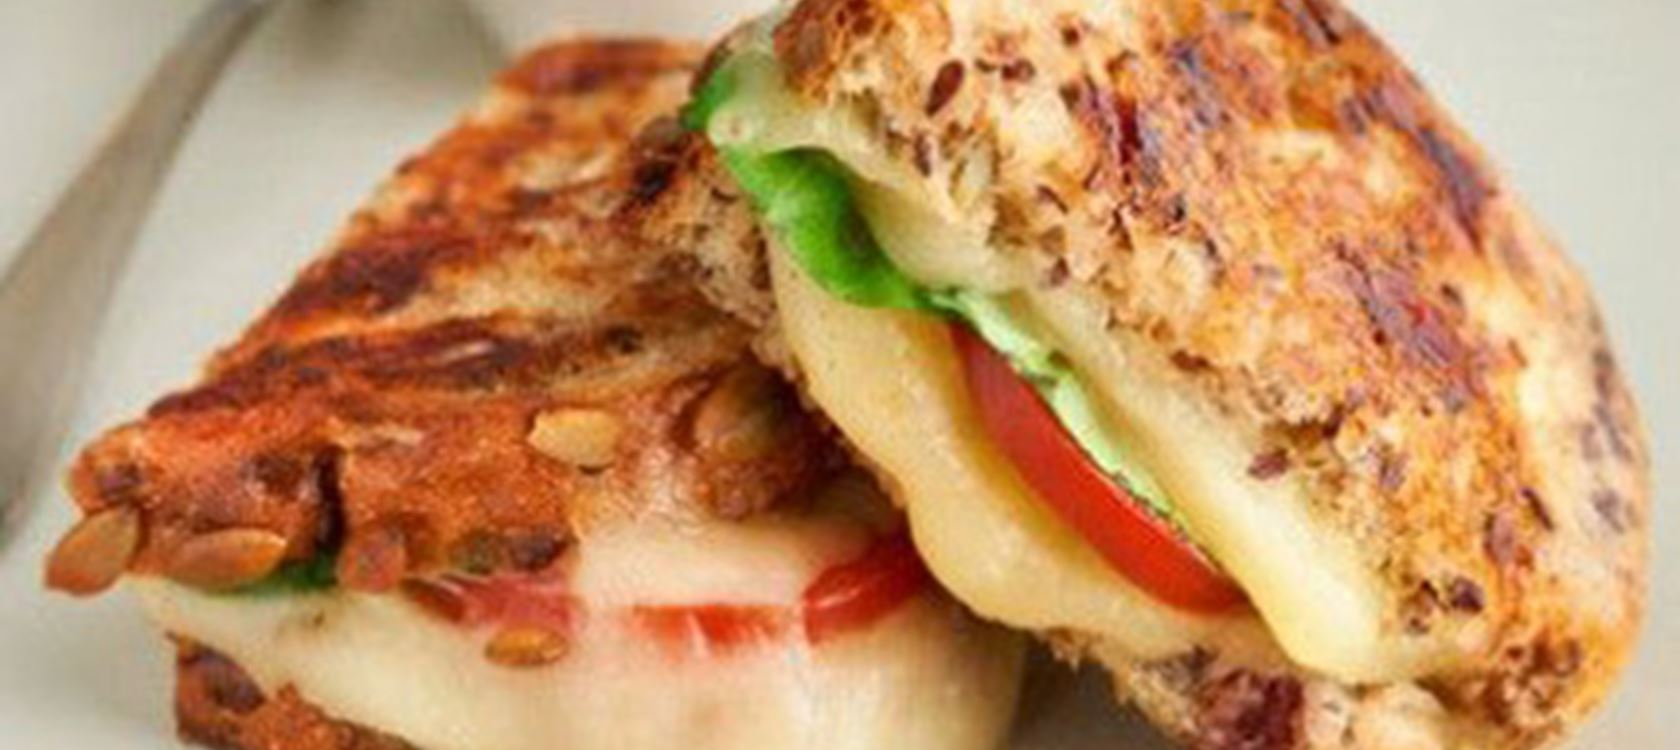 Grilled Havarti & Tomato Sandwiches on Cranberry Bread